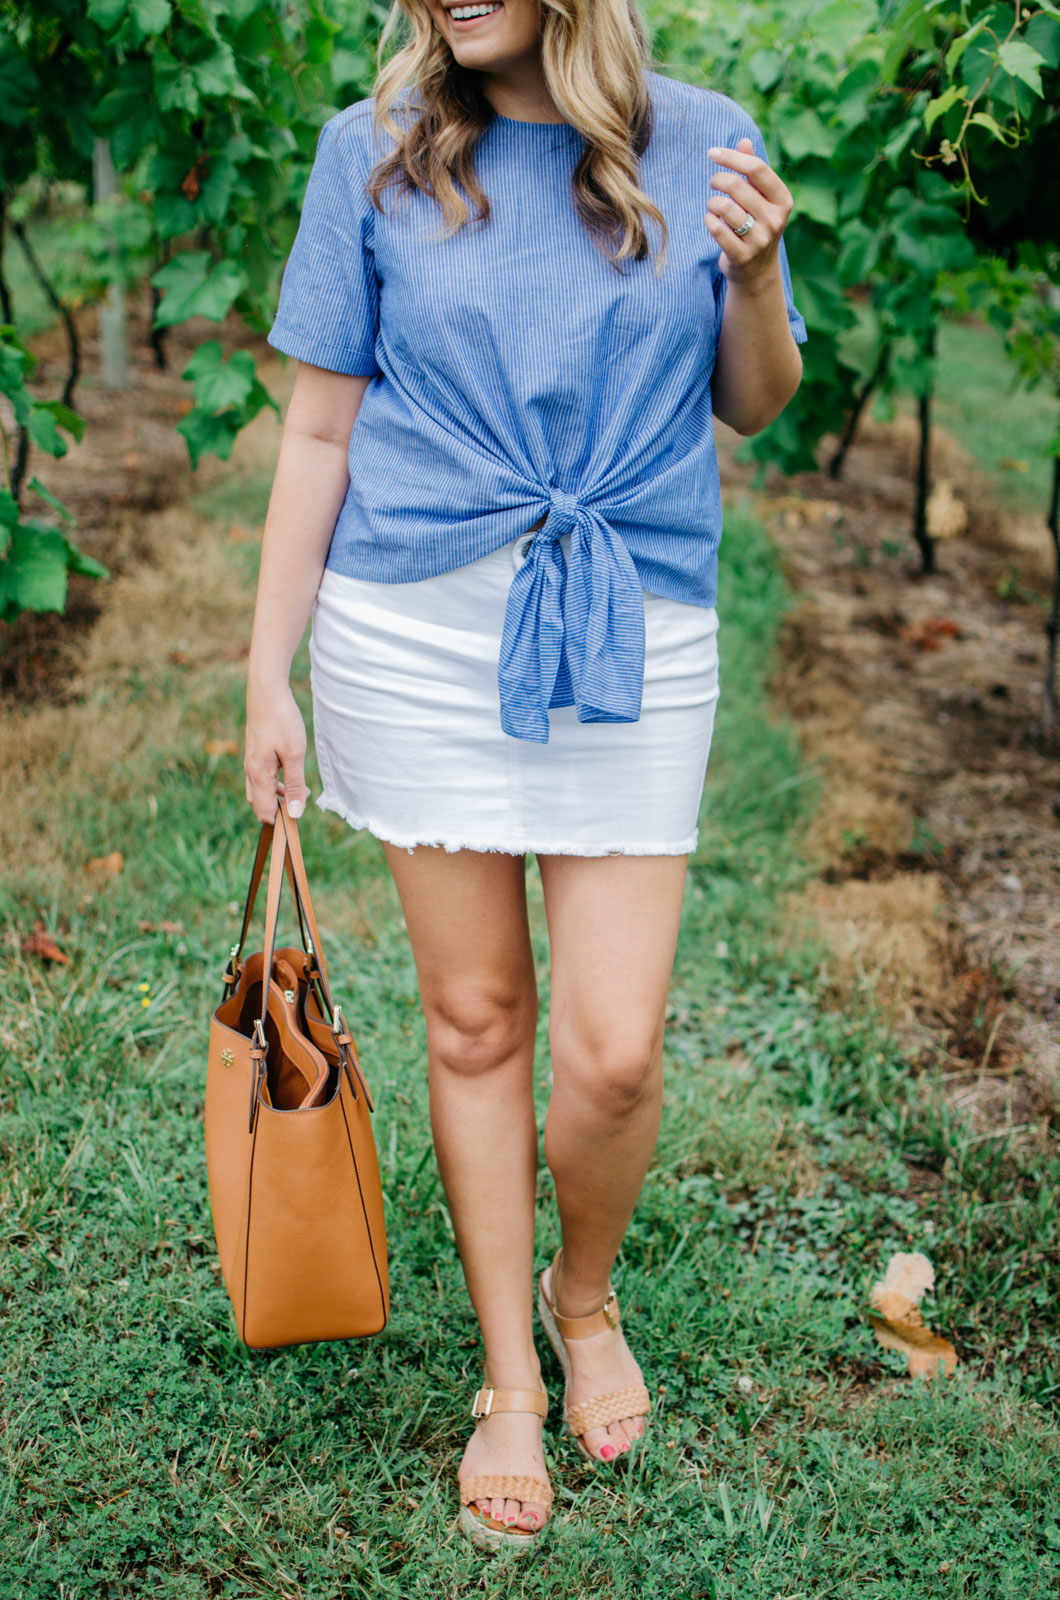 cutest summer style - tie front top and denim mini | Want more cute Summer outfits? Head to bylaurenm.com!